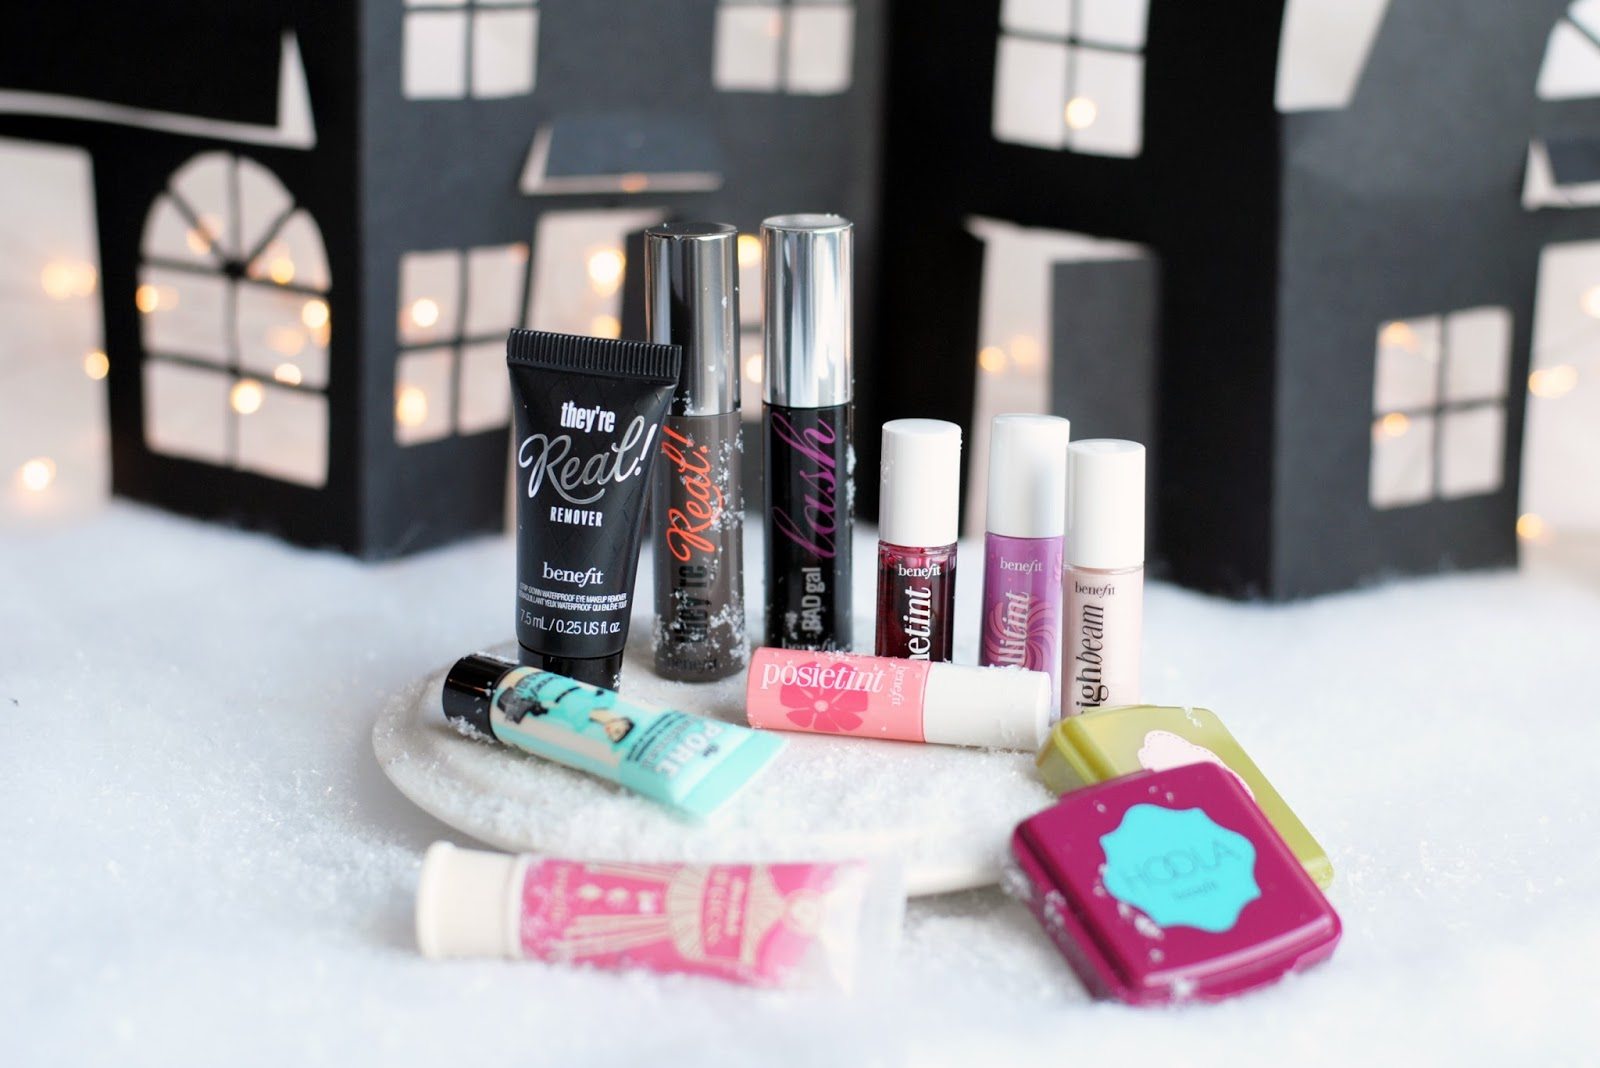 Benefit Advent Calendar 2016 I Am A Fashioneer Bloglovin The Porefessional Face Primer Mini Size 75ml Original All Bestsellers In From Mascara To Highlighters Blushes And Lip Products Perfect Get Know Brand